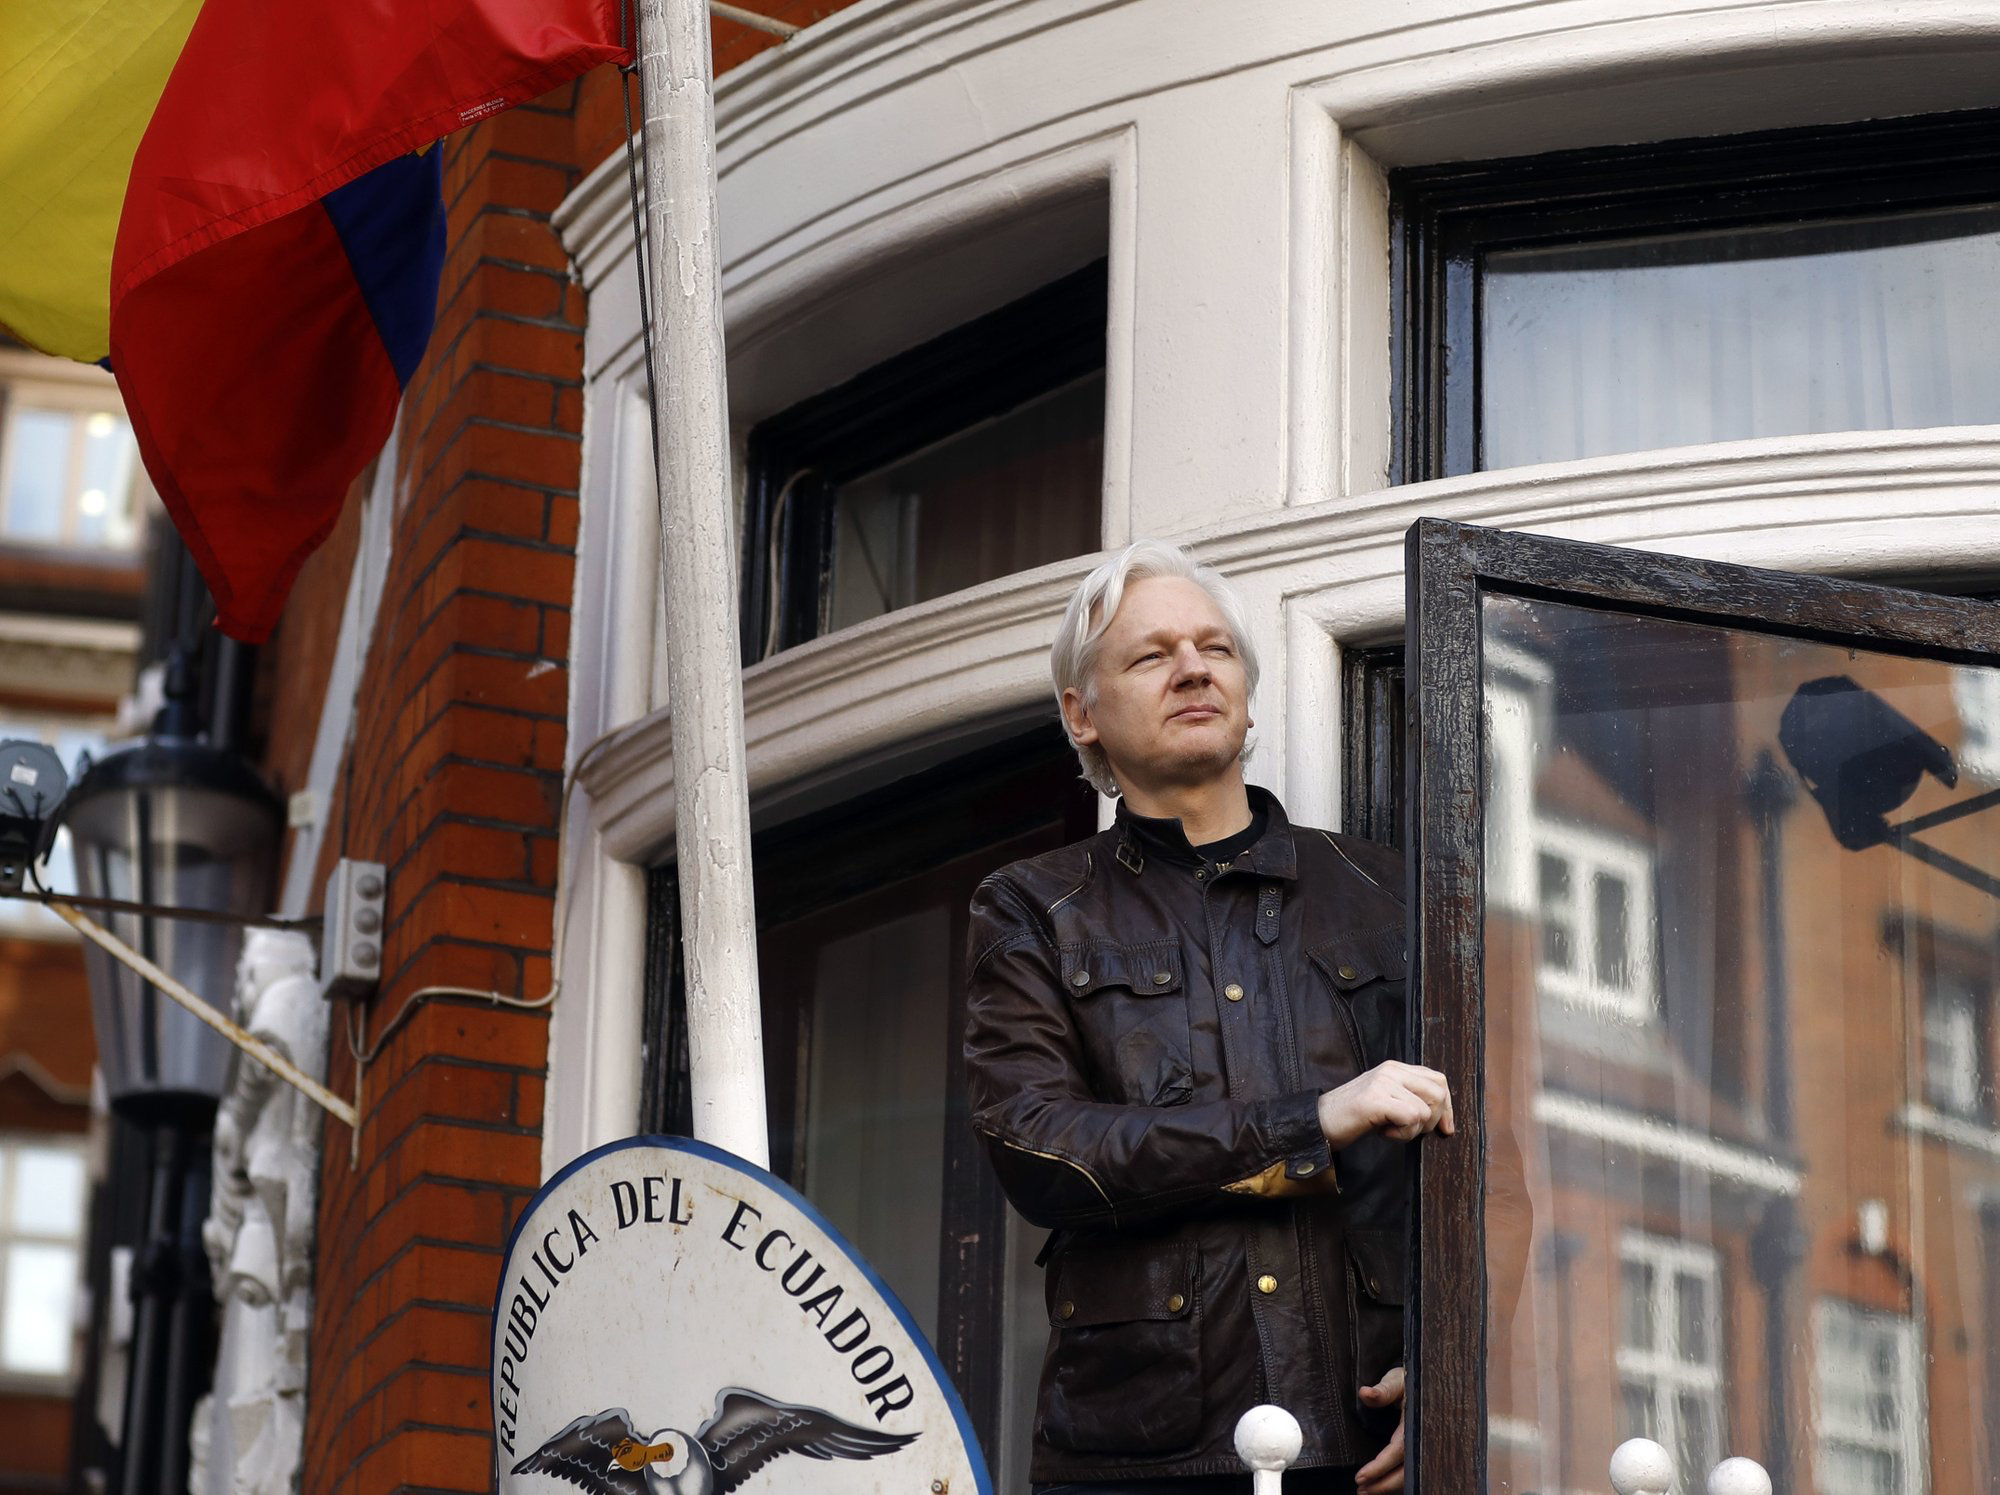 Julian Assange pictured on a balcony of the Ecuadorian Embassy in London in 2017. Assange was arrested on Thursday by London police after Ecuador ended his 7-year asylum. Photo:  AP Photo /Frank Augstein, Fil.